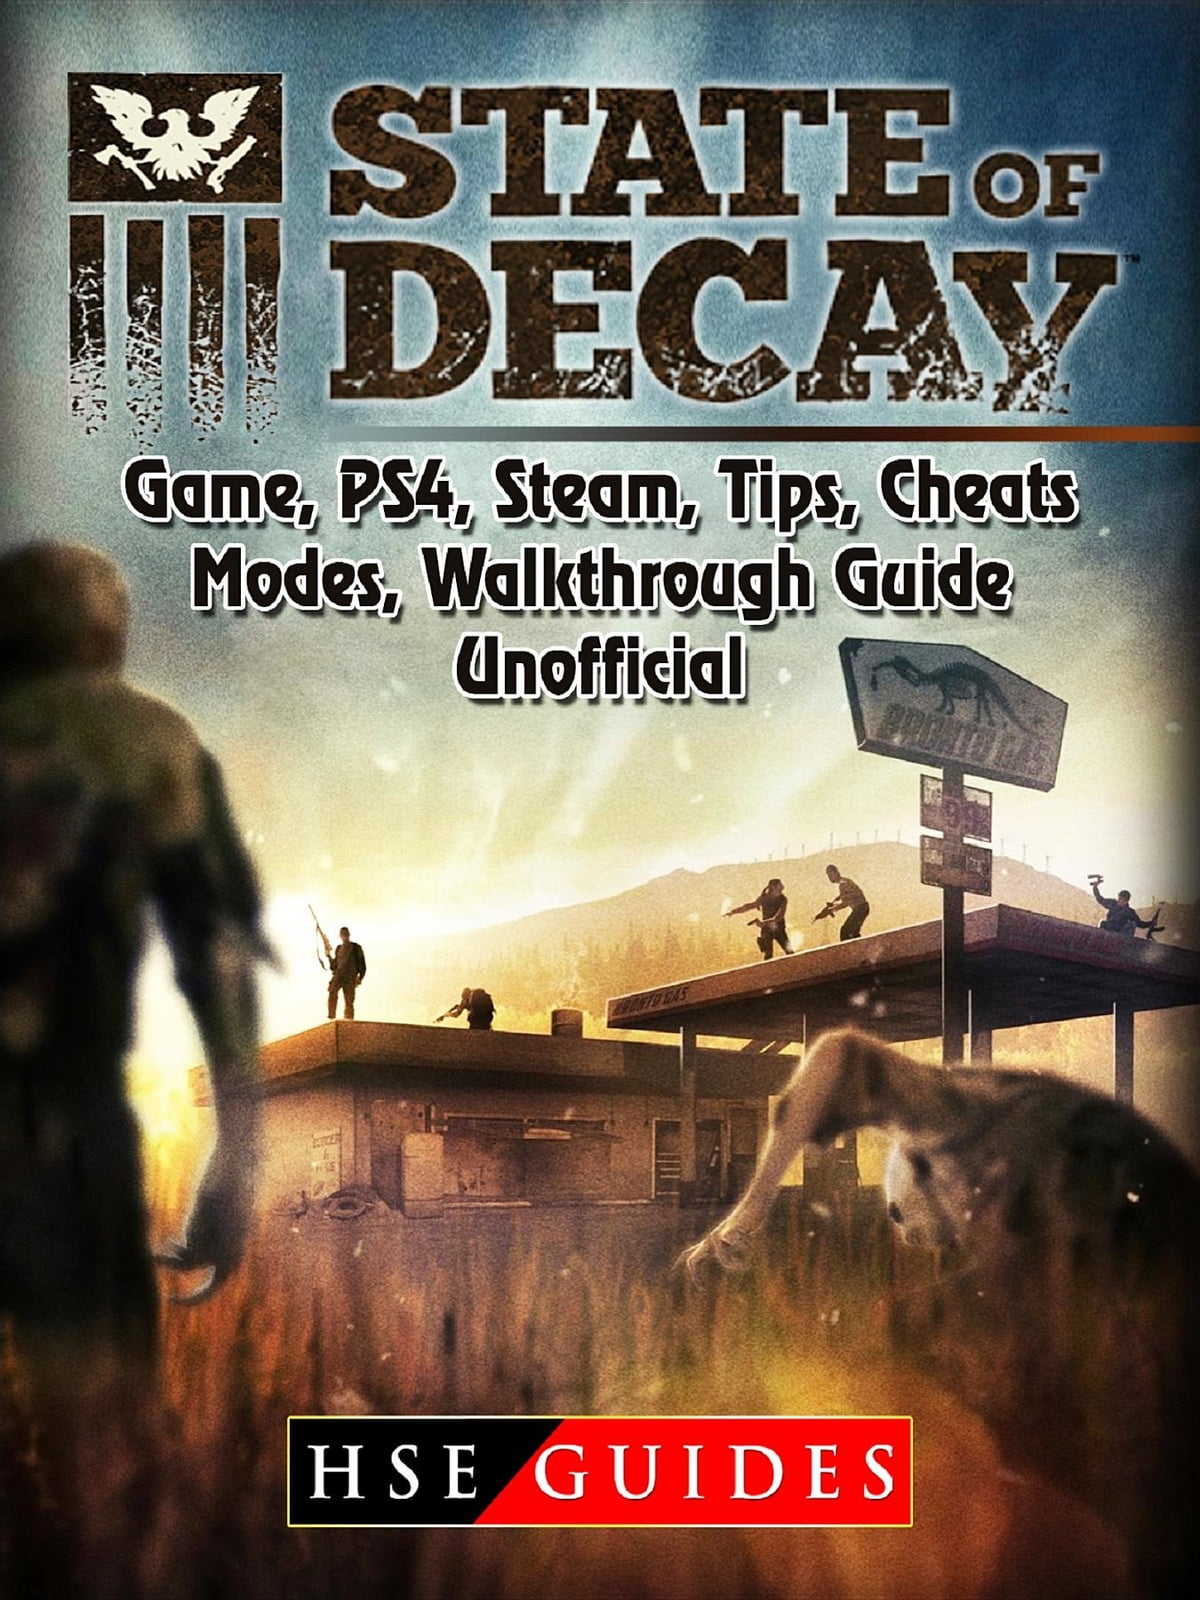 State of Decay Game, PS4, Steam, Tips, Cheats, Modes, Walkthrough, Guide  Unofficial eBook by HSE Guides - 9781387796960 | Rakuten Kobo